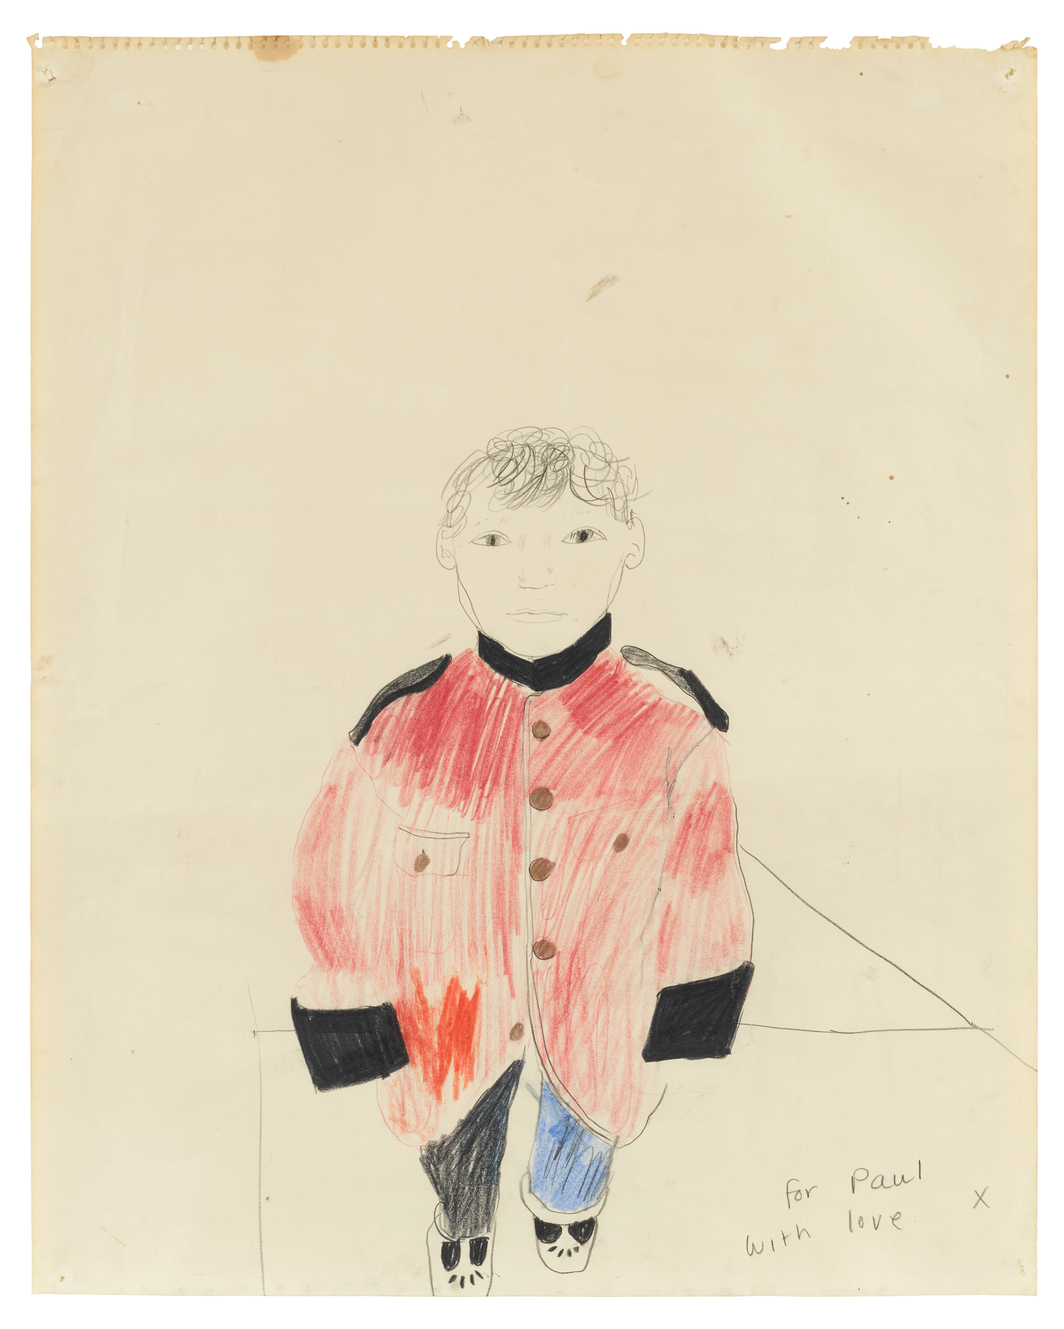 "David Hockney, For Paul With Love David, 1965, colored crayon on paper, 19 7/8 x 15 7/8"".  © David Hockney. Courtesy of Kasmin Gallery."